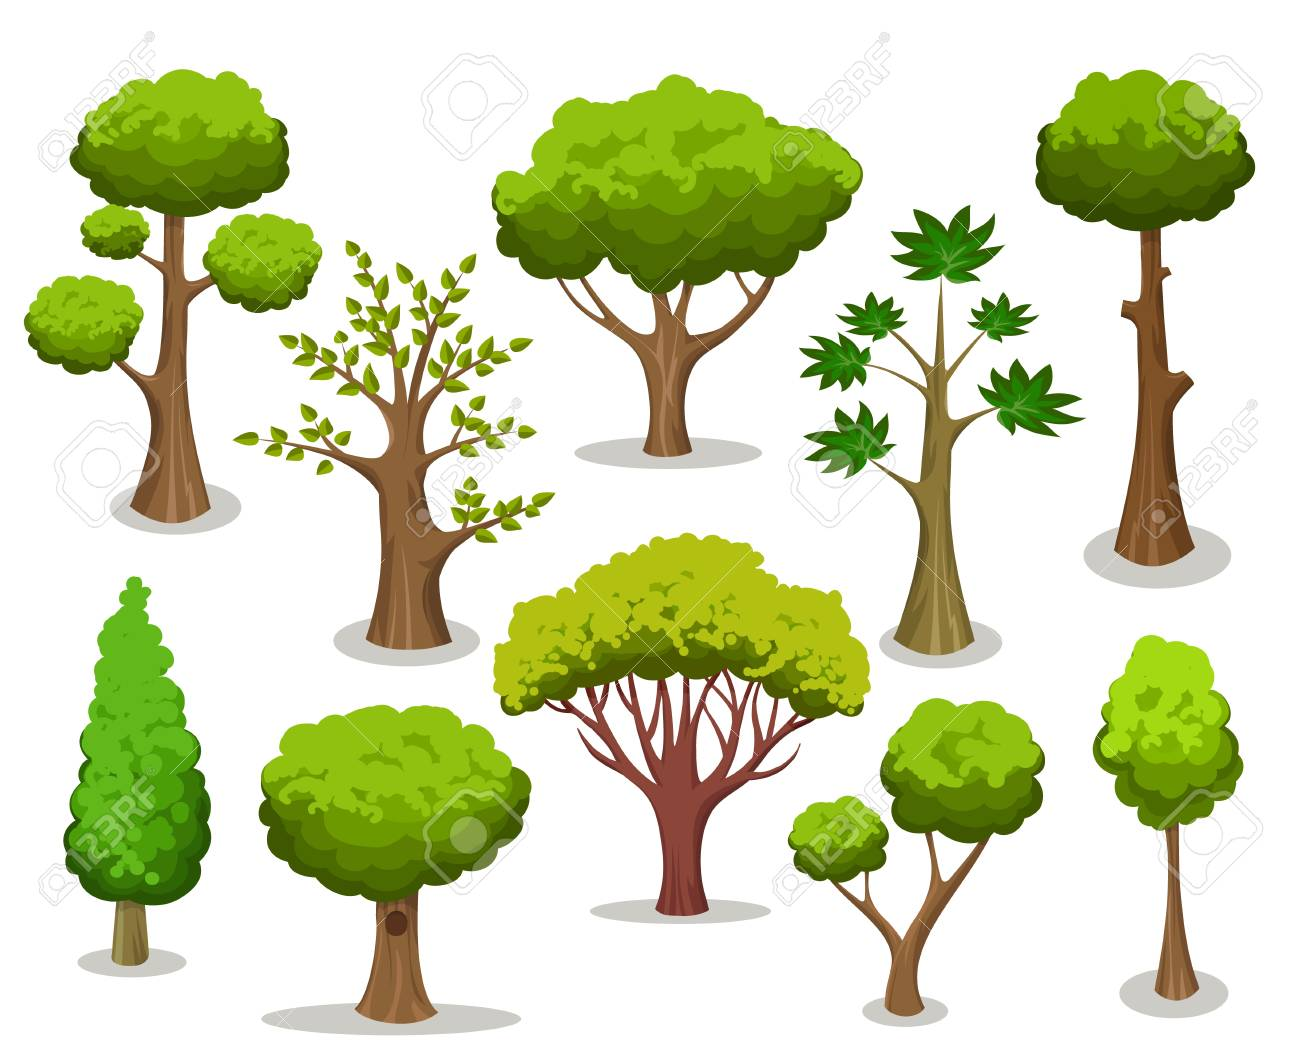 Tree collection. Cartoon natural trees clipart isolated on white...